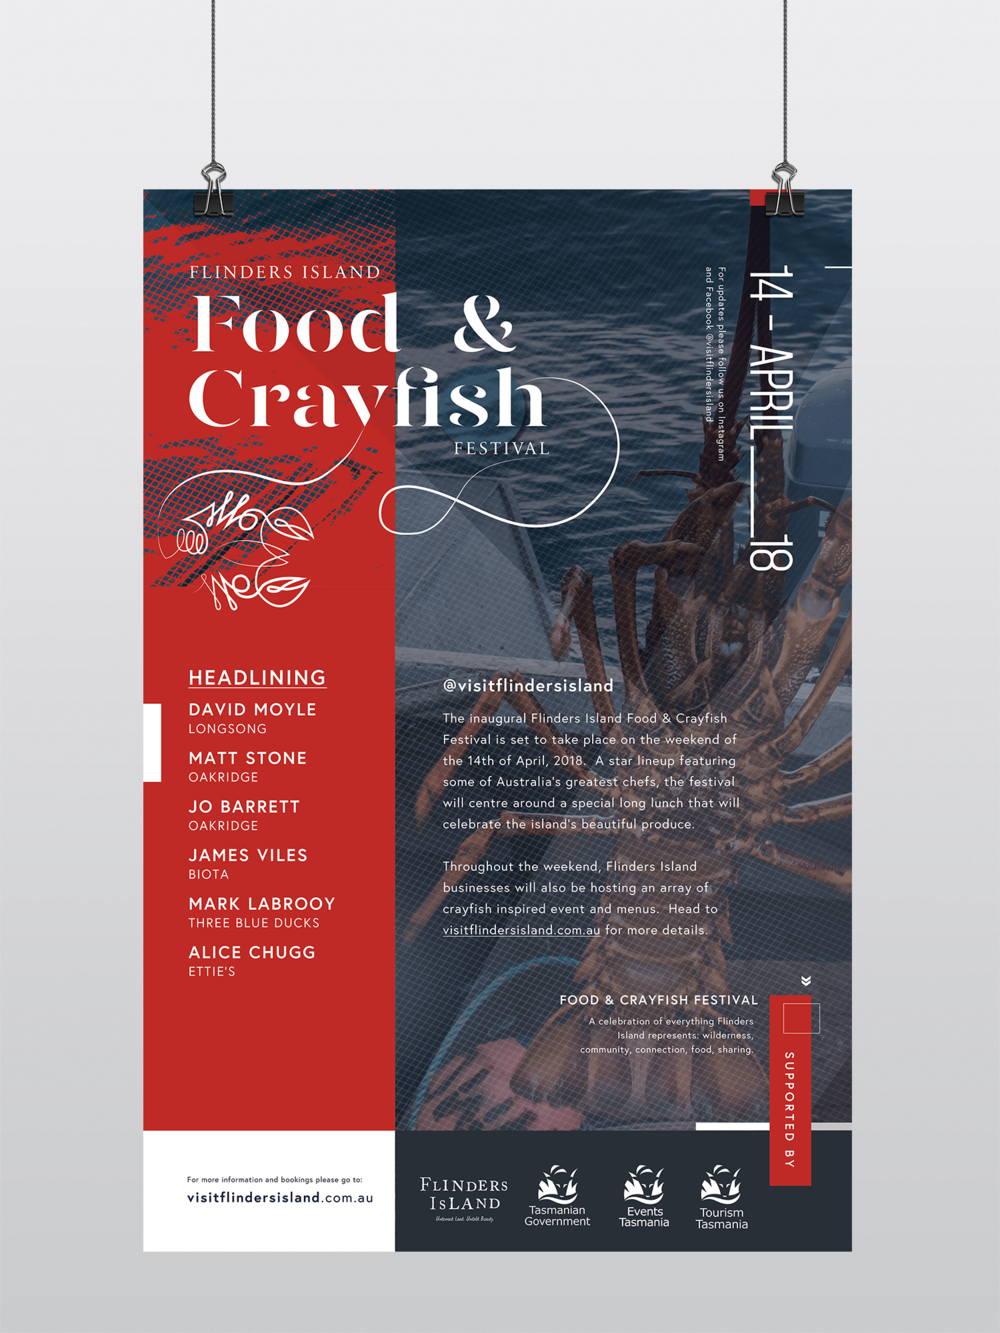 Flinders Island Food & Crayfish Festival 2018 Poster Design